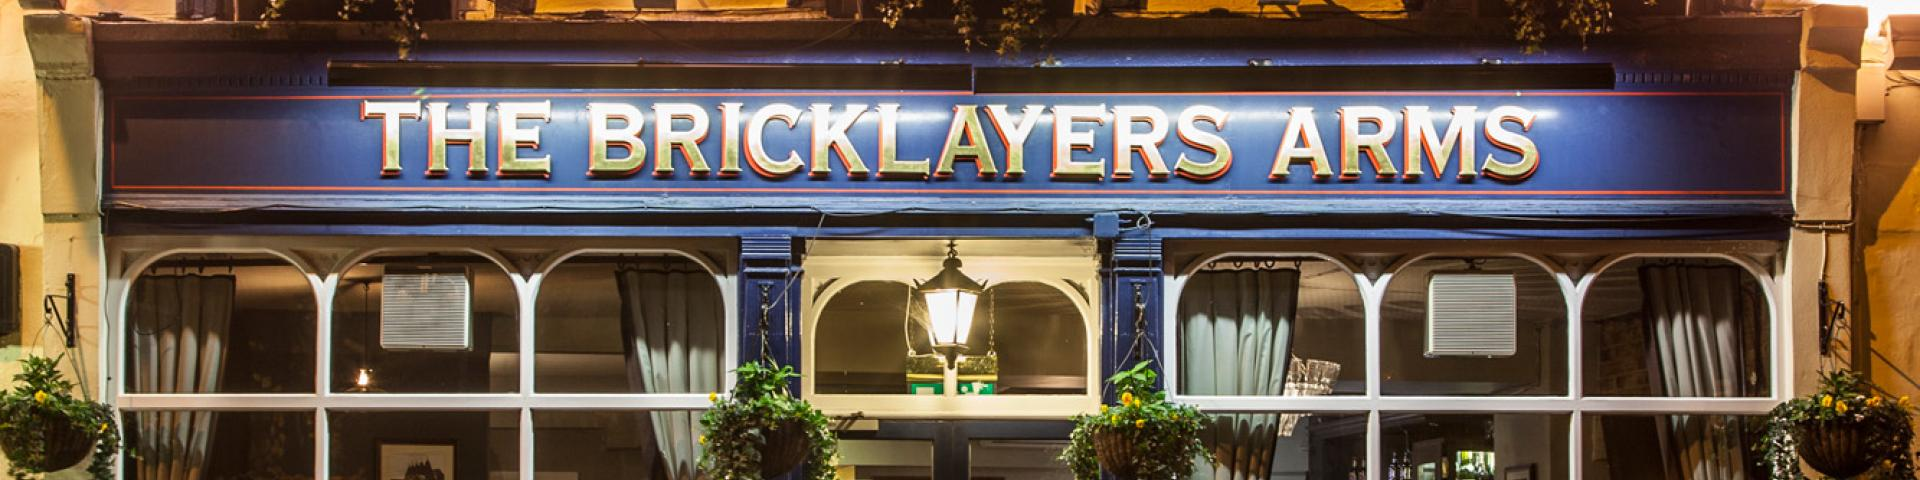 The Bricklayers Arms Bromley